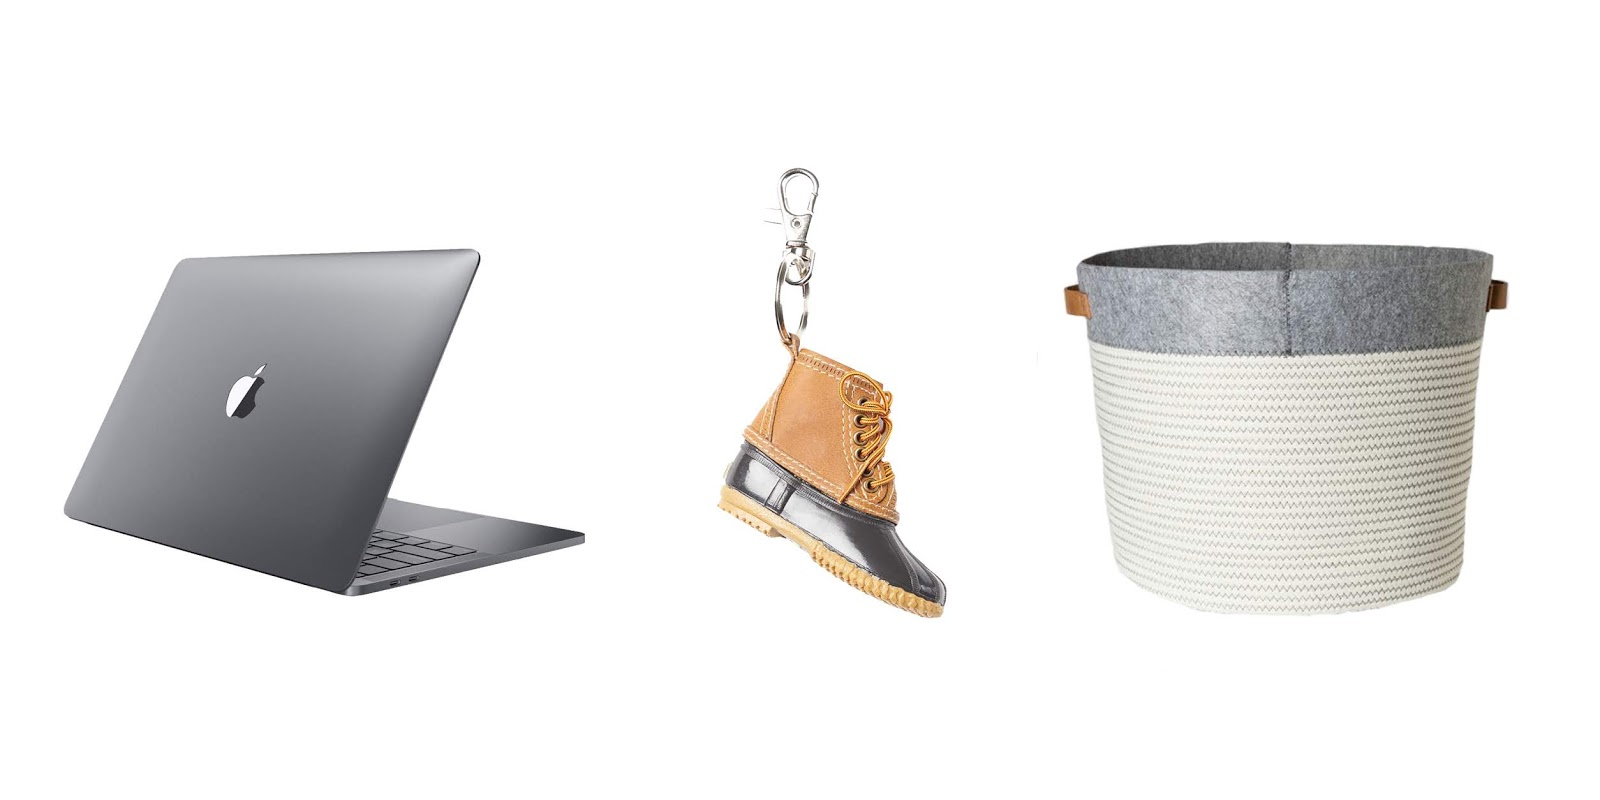 College Blogger, Travel Blogger, Lifestyle Blogger, Wisconsin Blogger, Macbook Pro, Sperry Duckboot Keychain, Target Decorative Basket, Target Large Rope Baskets, Home Decor Blogger